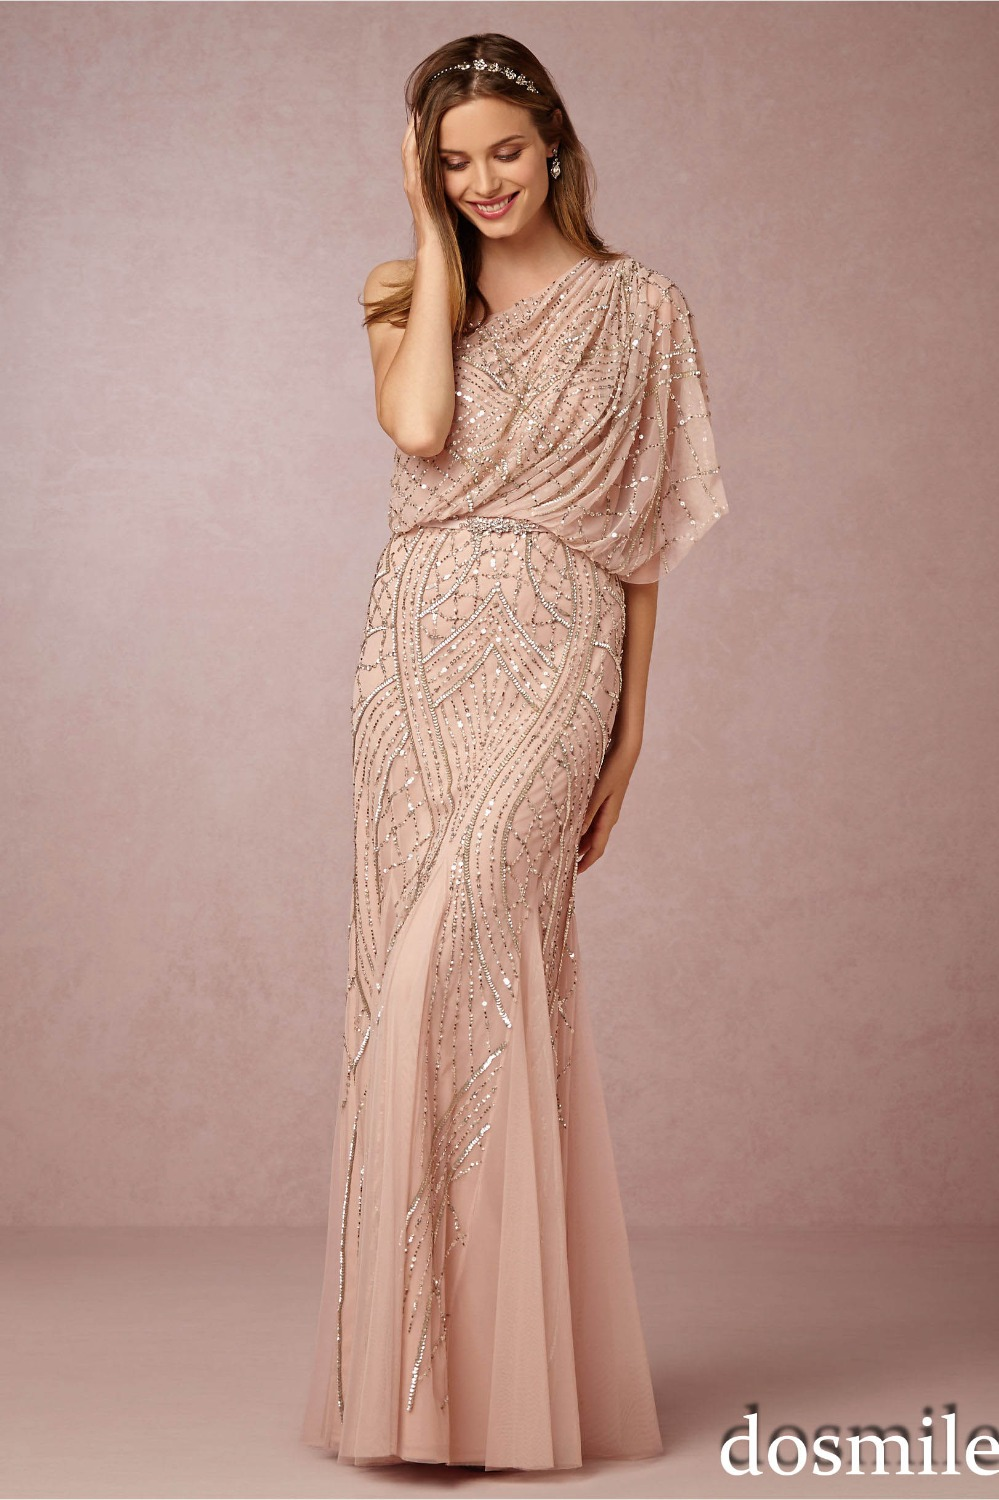 2016 Gorgeous Champagne Gold Sequin Bridesmaid Dresses One Shoulder